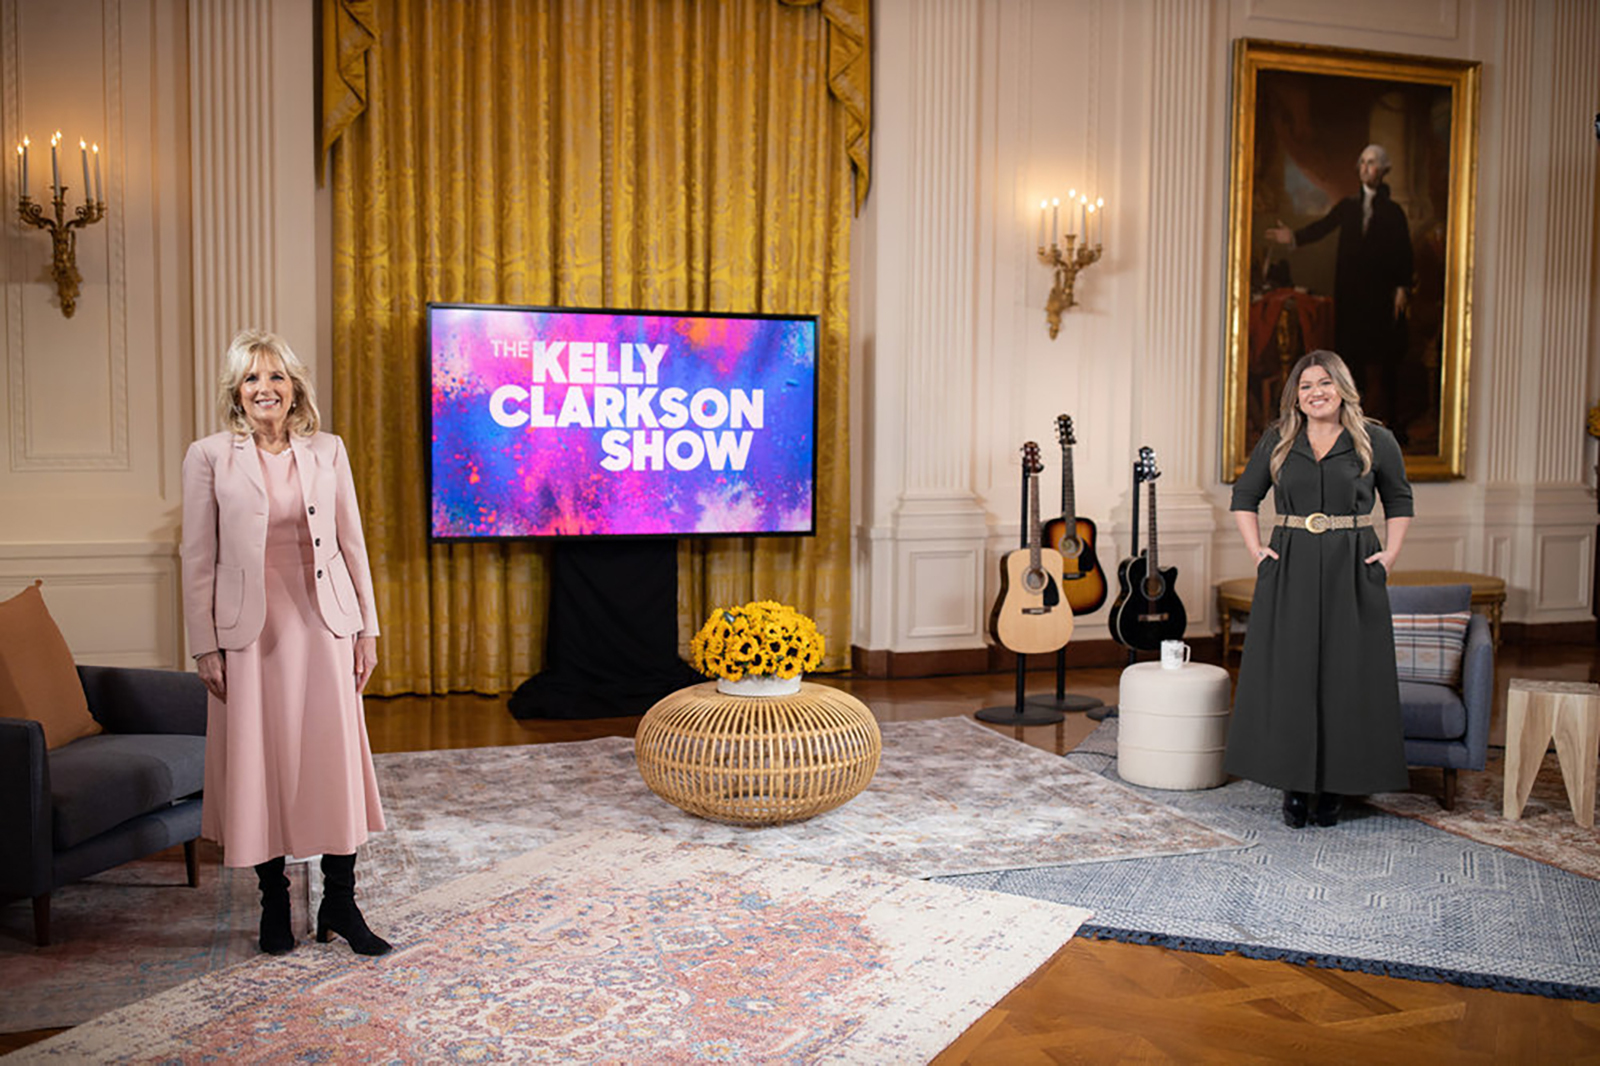 Jill Biden gives Kelly Clarkson advice on her divorce